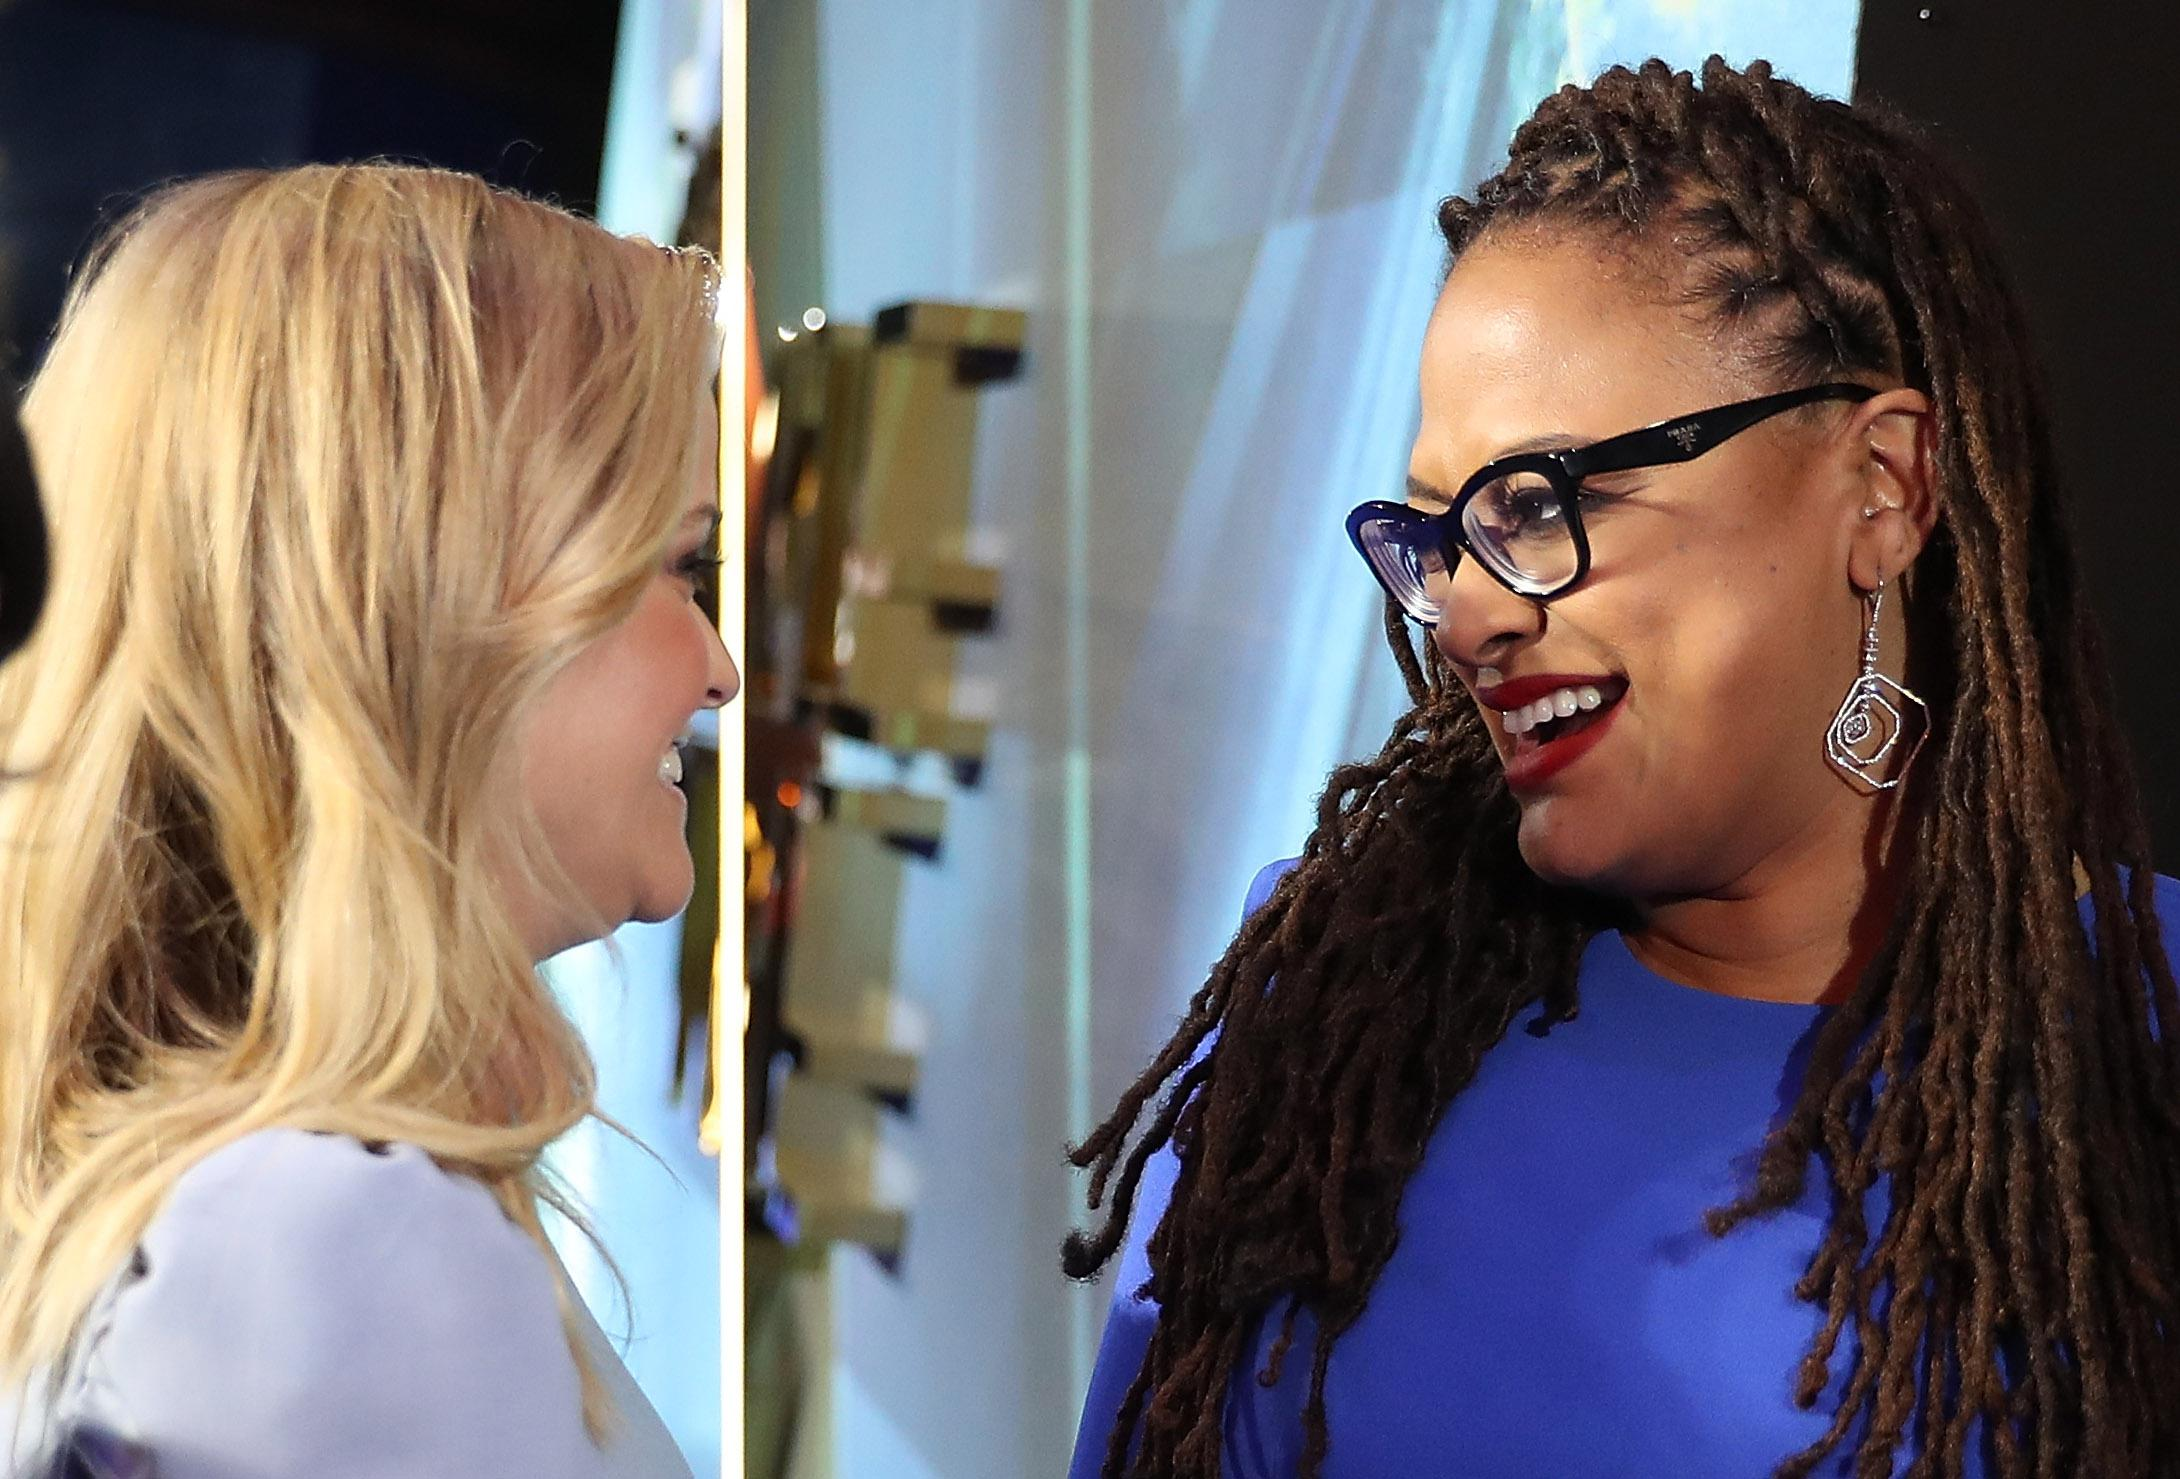 Reese Witherspoon and Ava Duvernay face each other, smiling, on the Wrinkle in Time red carpet.